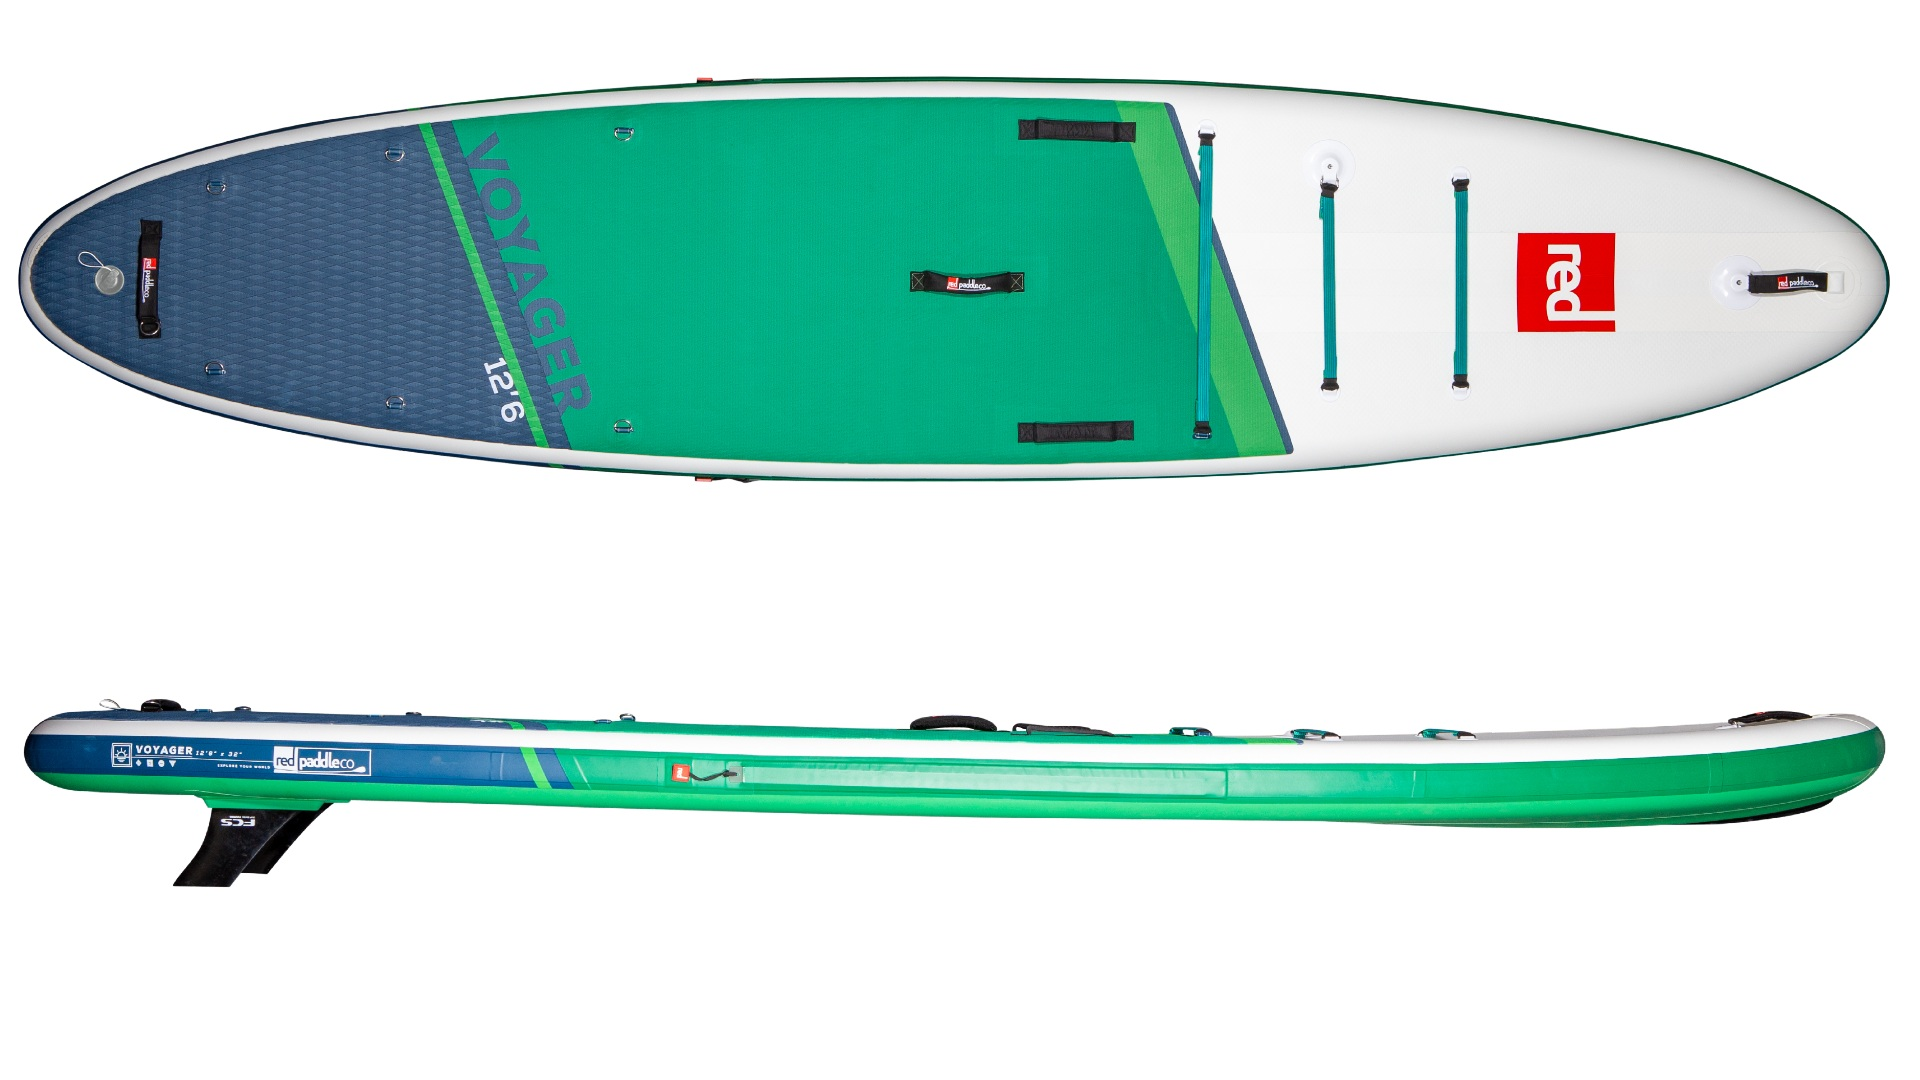 Red Paddleboard voyager